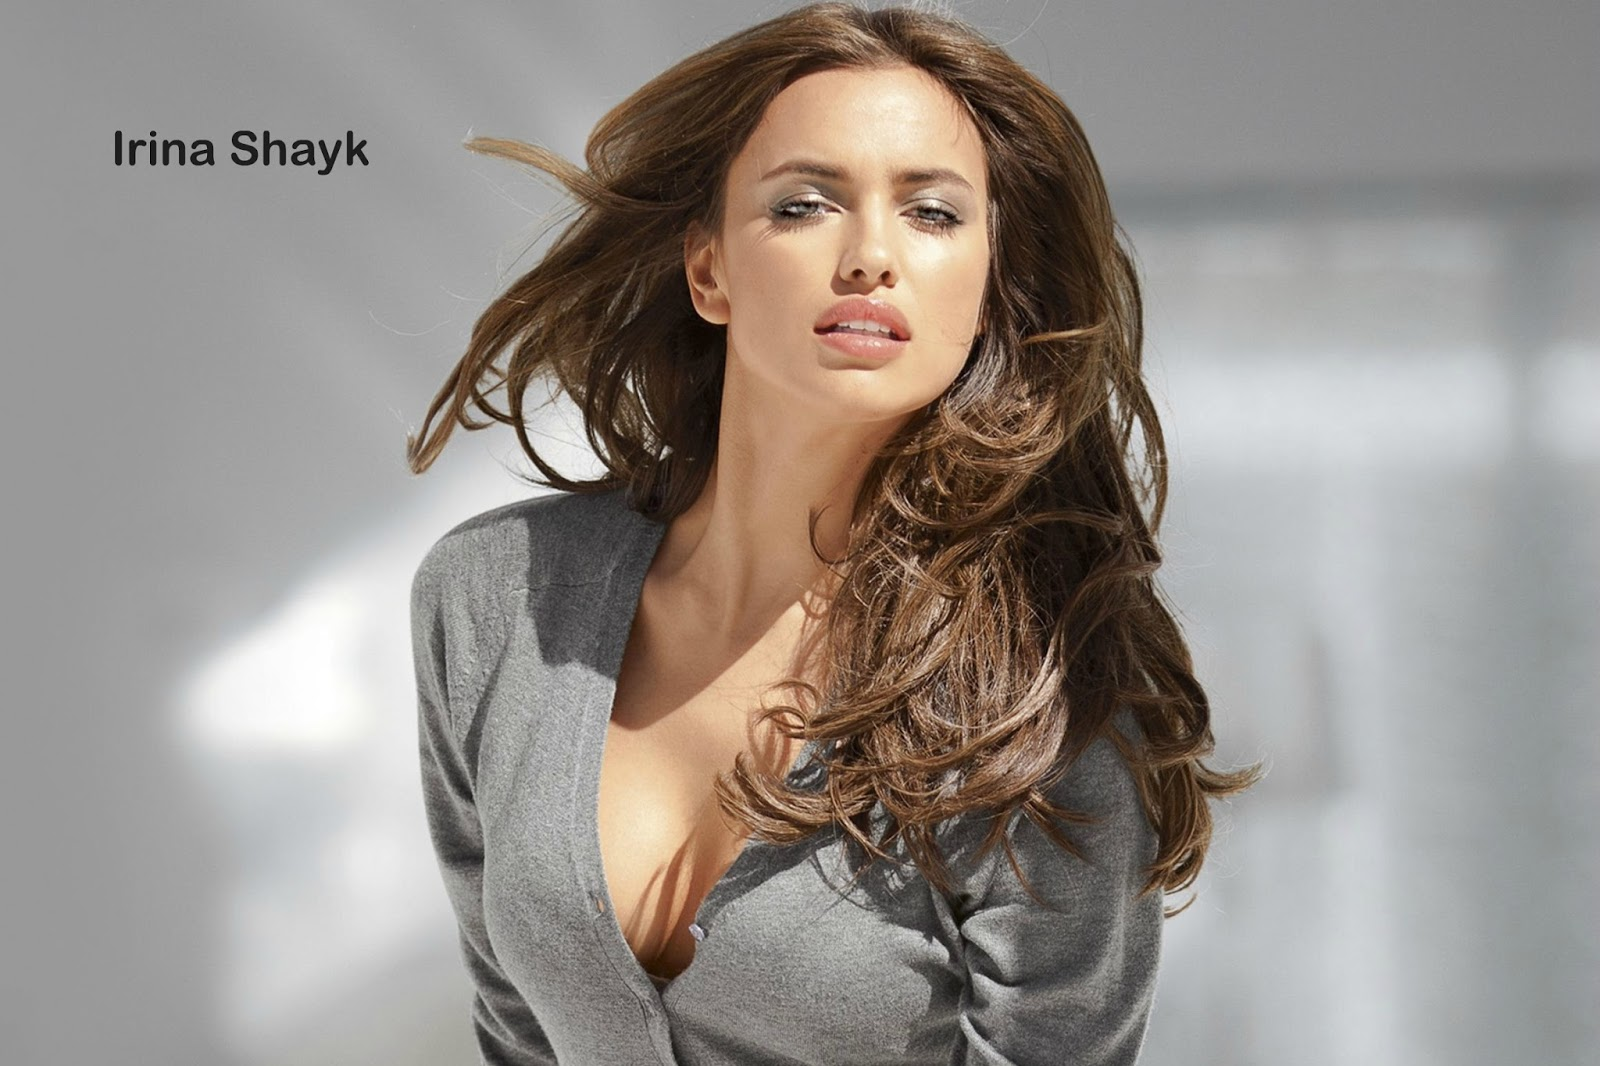 irina shayk hd wallpapers | most beautiful places in the world